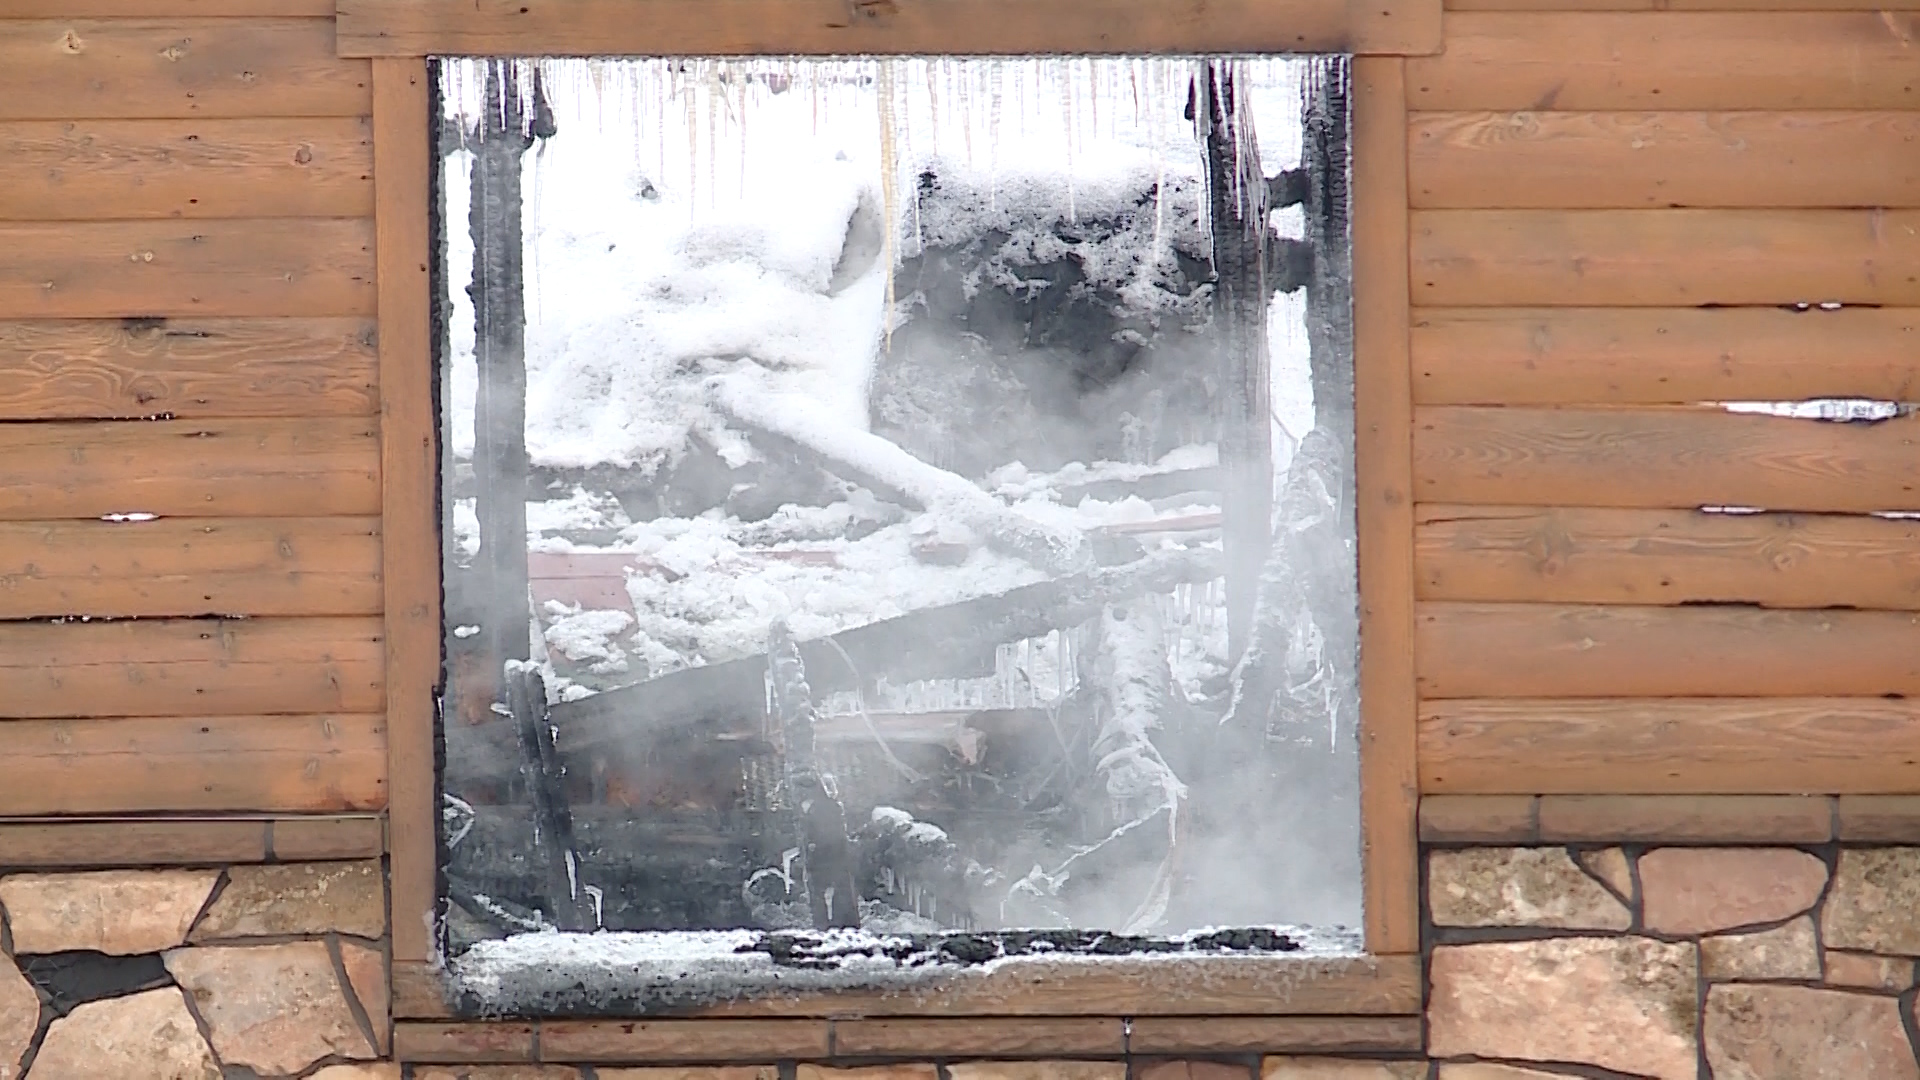 The scene on Saturday, Feb. 16, 2019, of a home explosion that occurred the night before in a gated community on Lake Pines Drive in Timber Lakes, which is just east of Heber City, Utah.